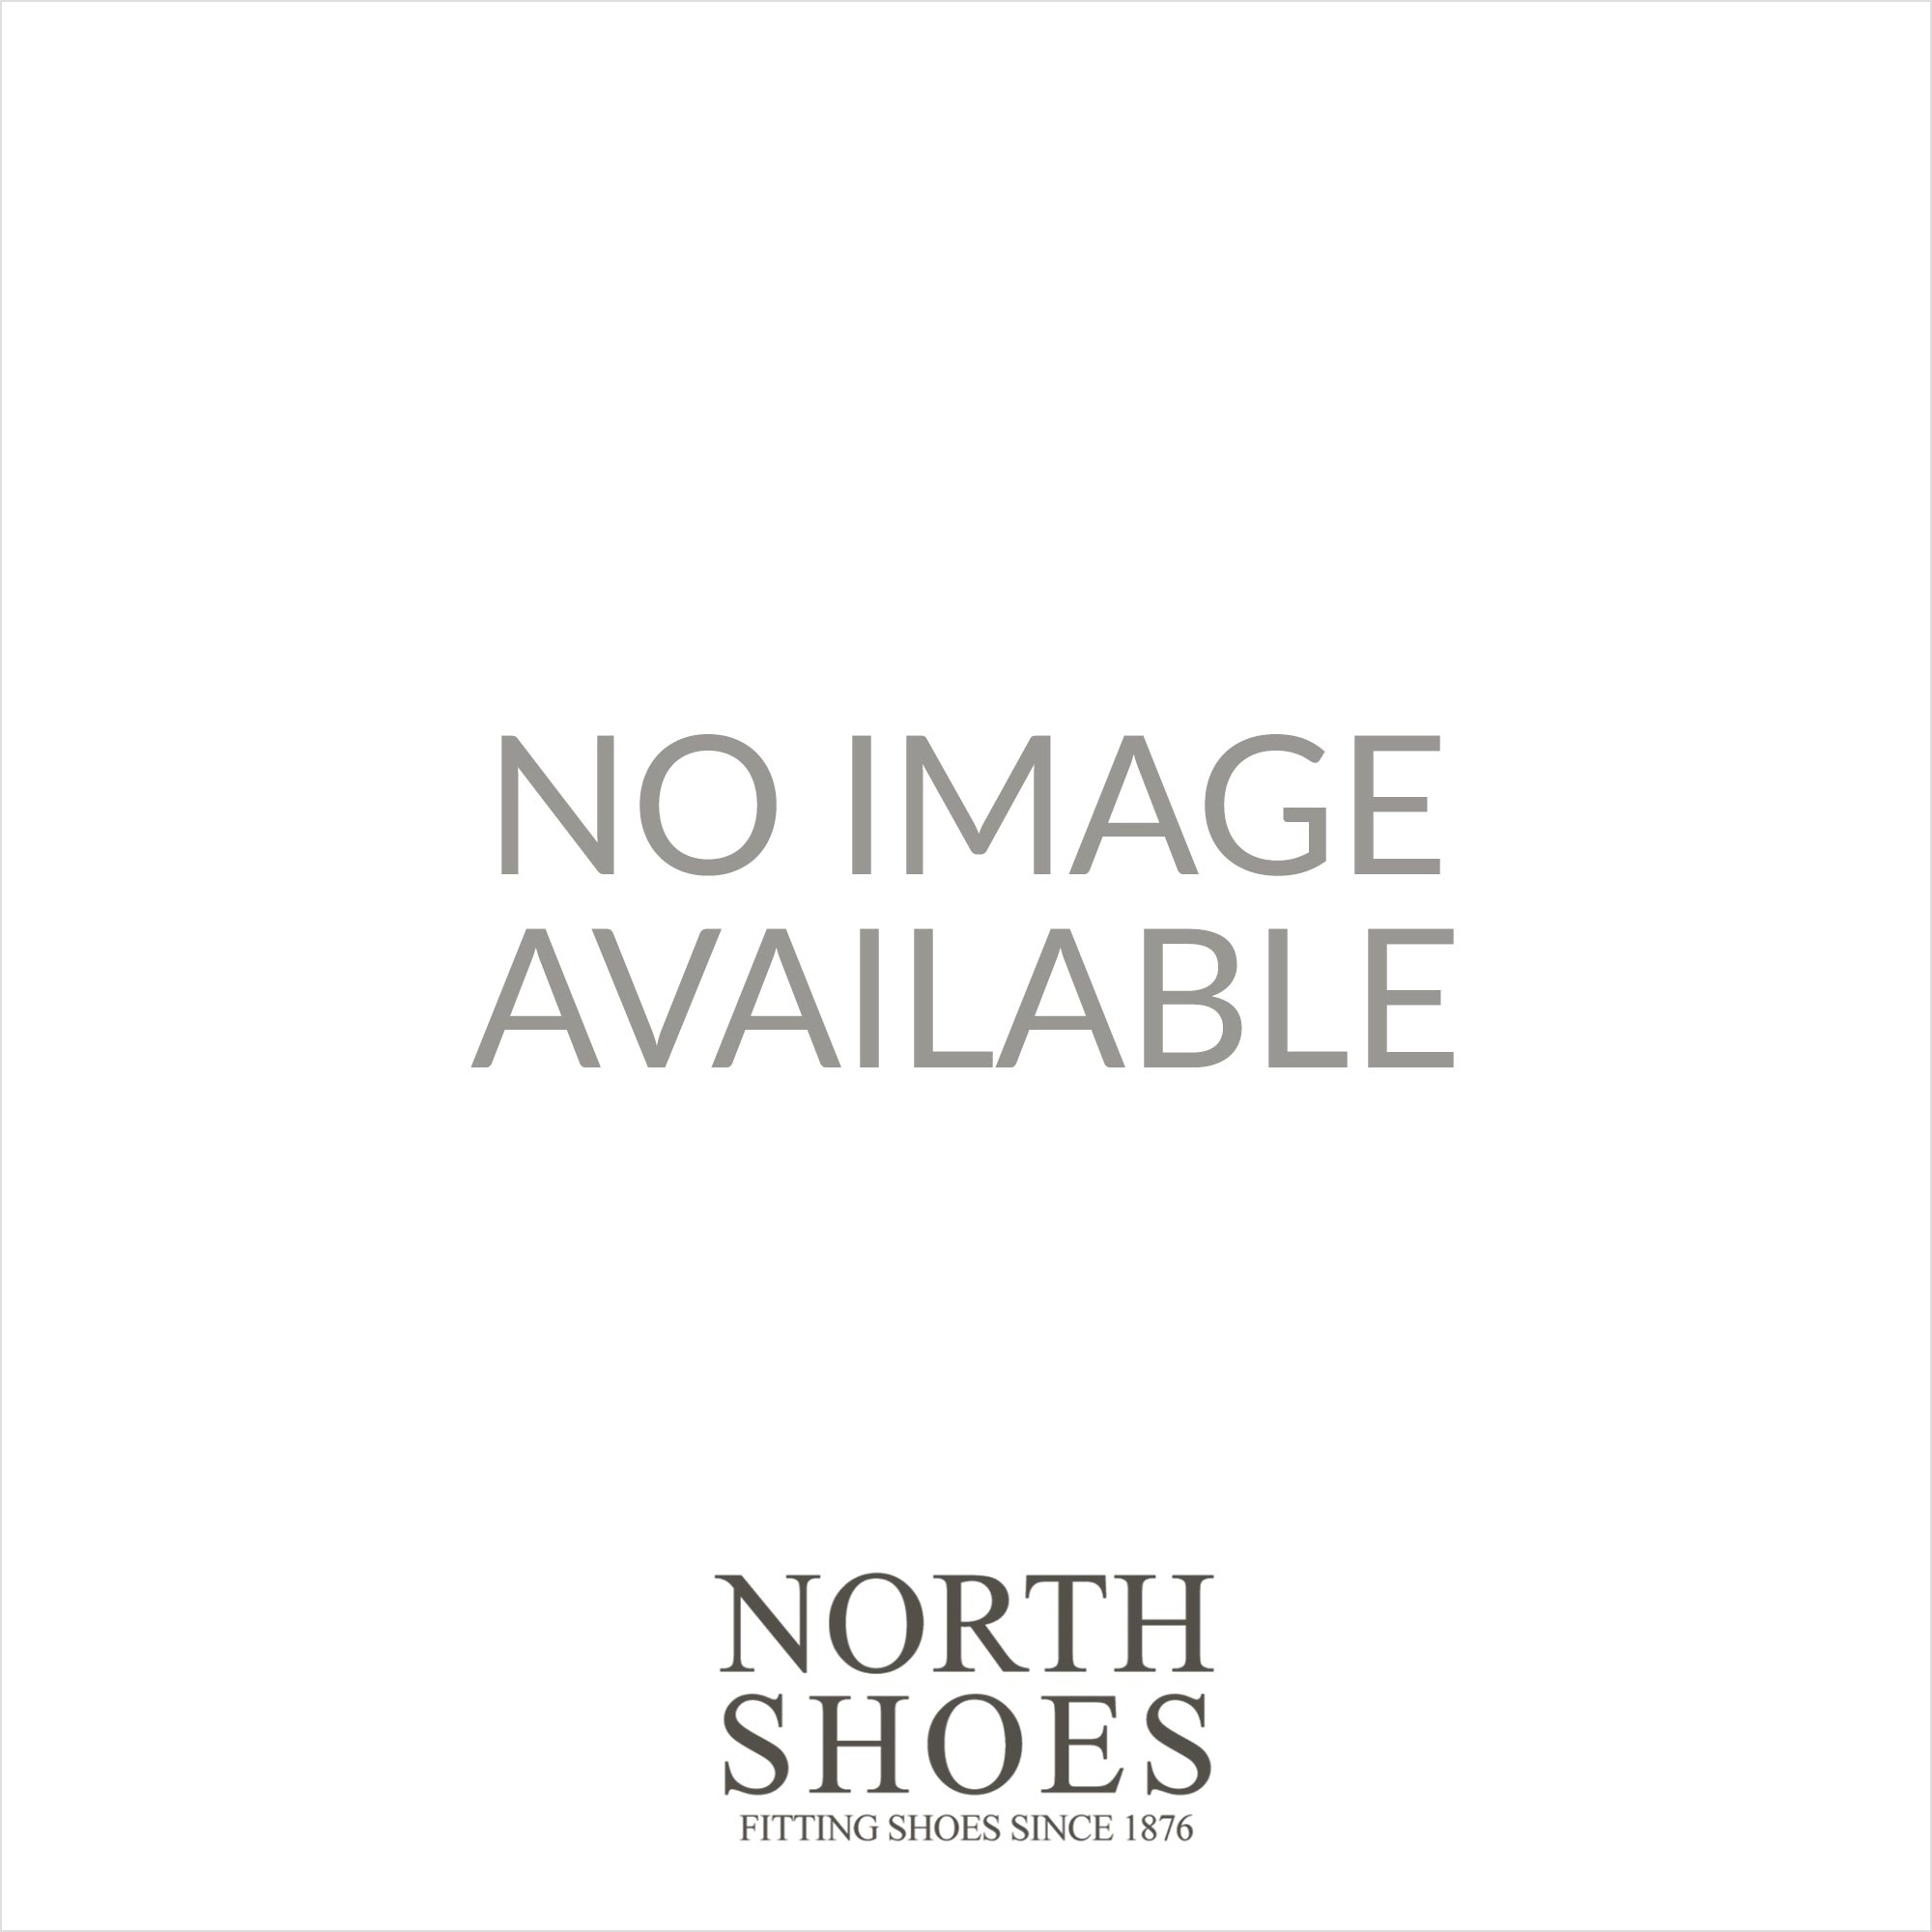 f0b5c1083e4344 Rieker 62470-64 Beige Womens Wedge Adjustable Strap Sandal - Rieker from  North Shoes UK